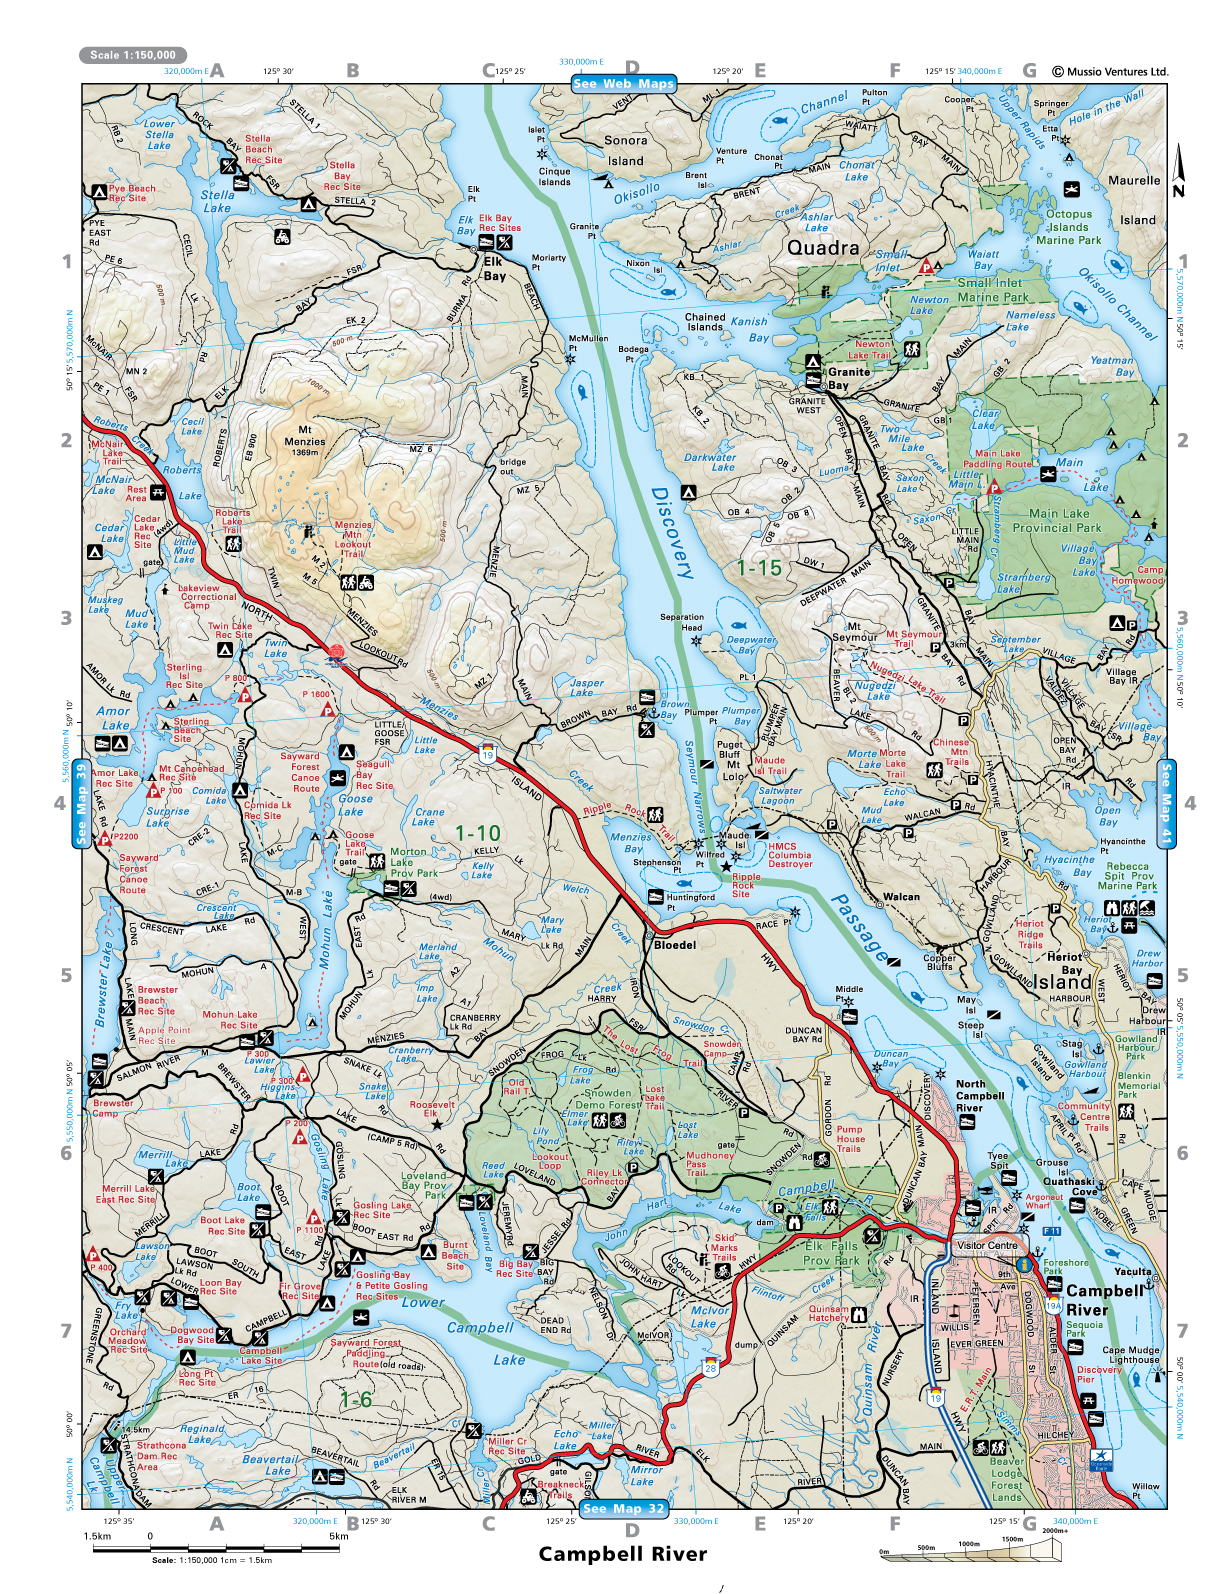 Campbell River Area Map Bloedel mappery